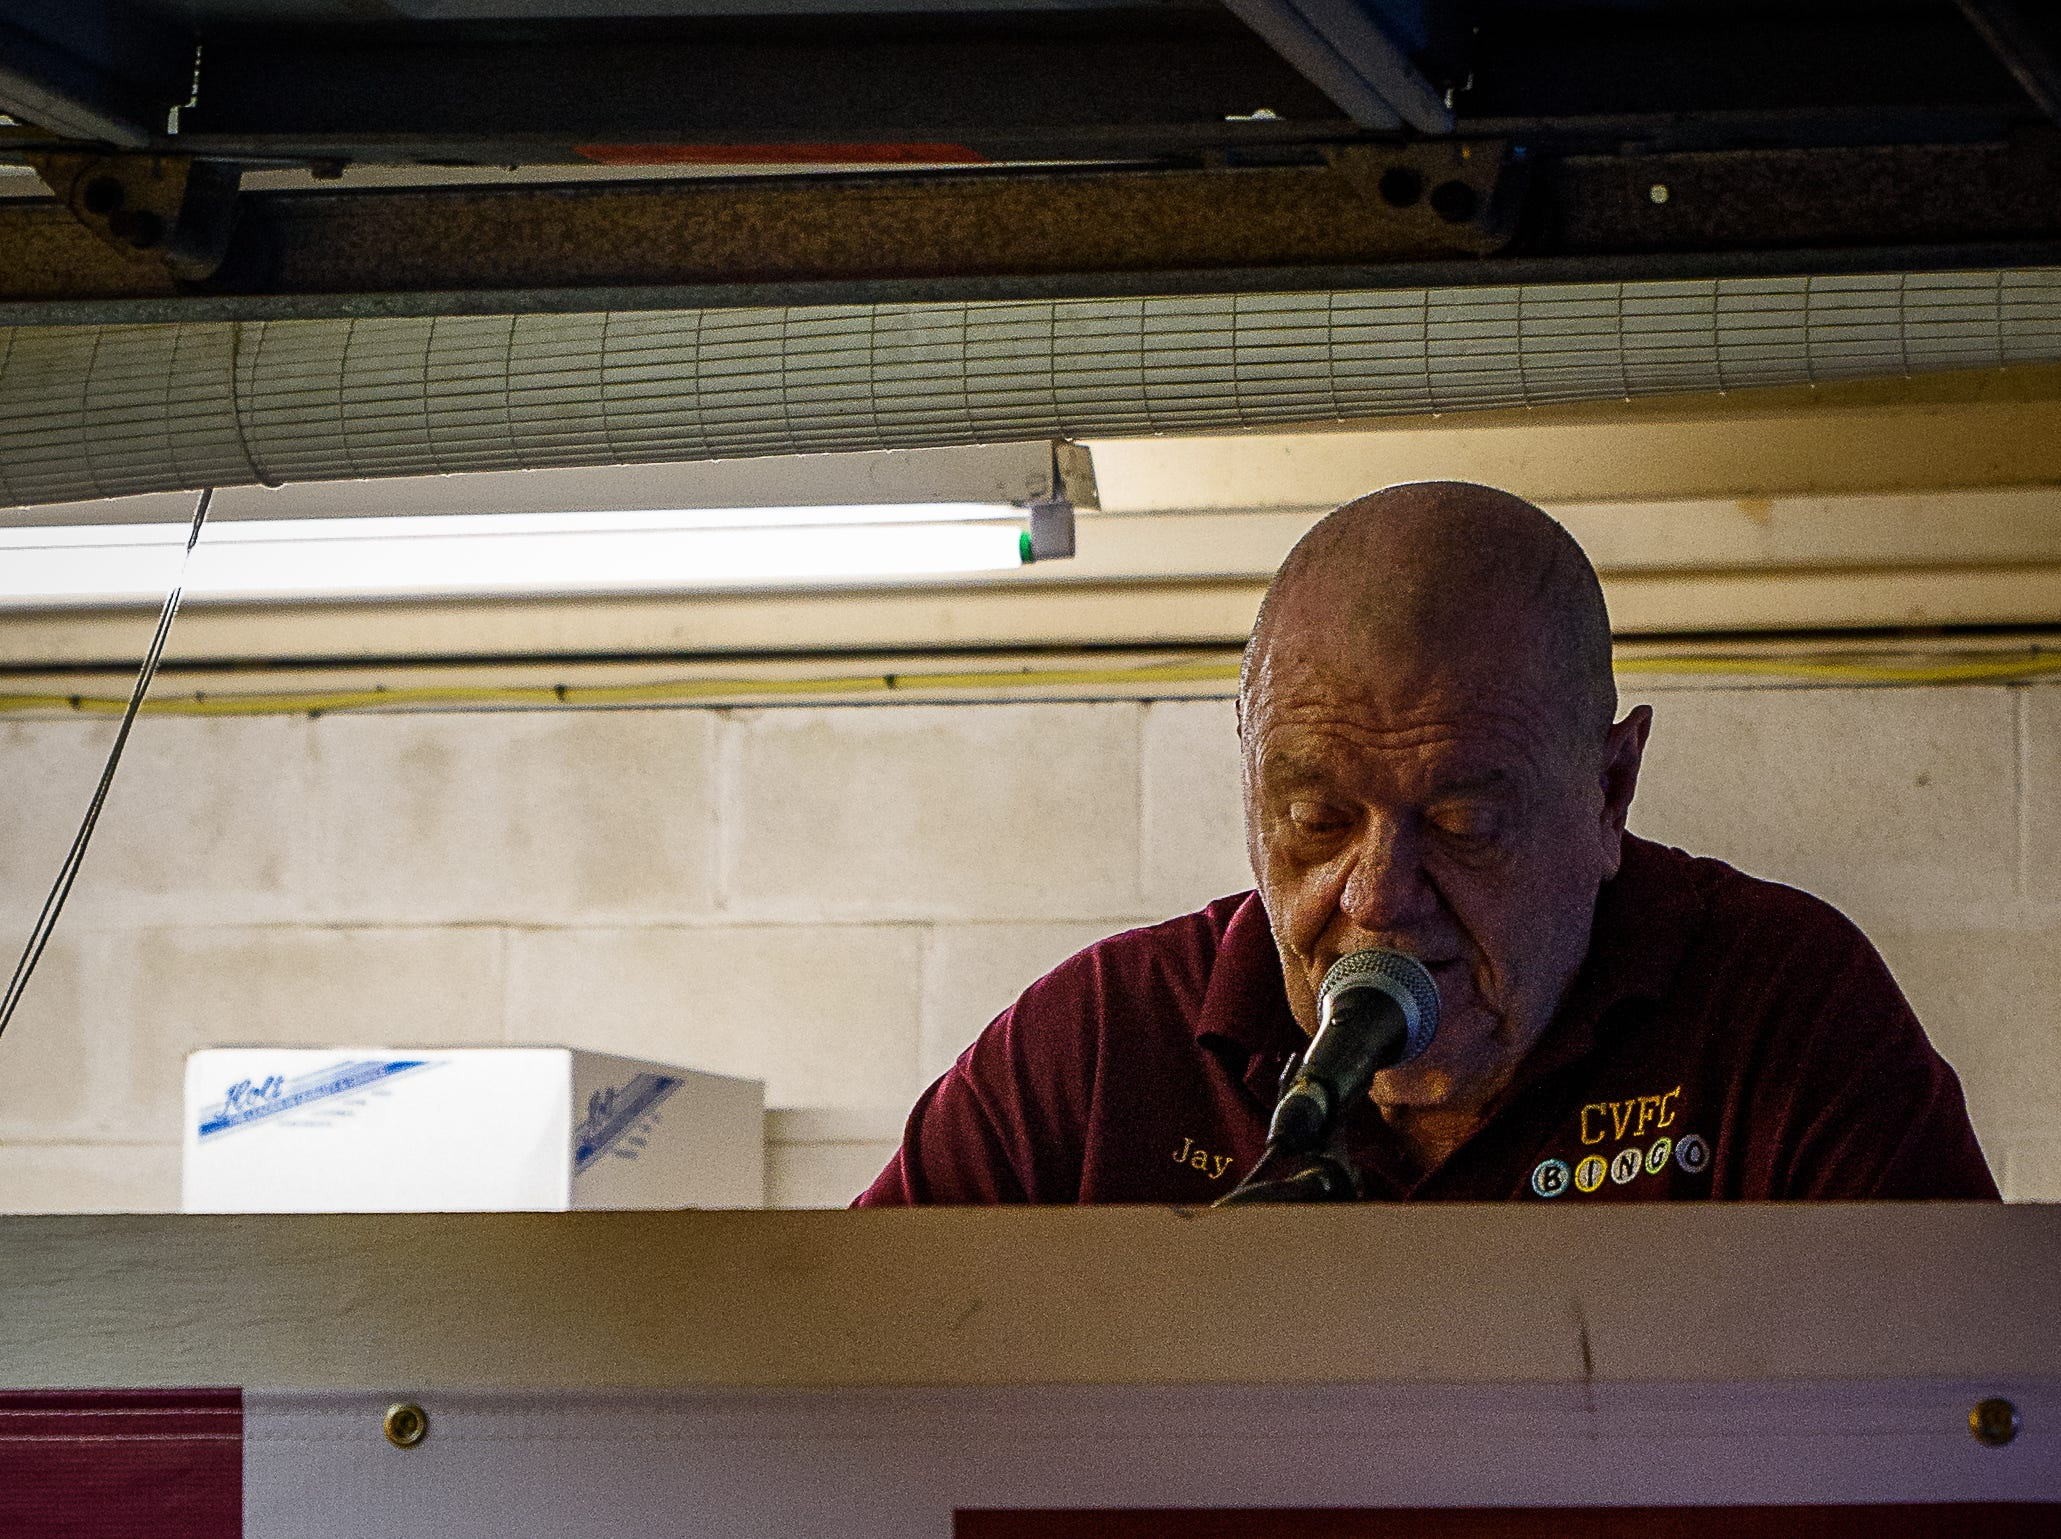 A Fire Department Volunteer calls the Bingo numbers at the Chincoteague Fireman's Carnival.